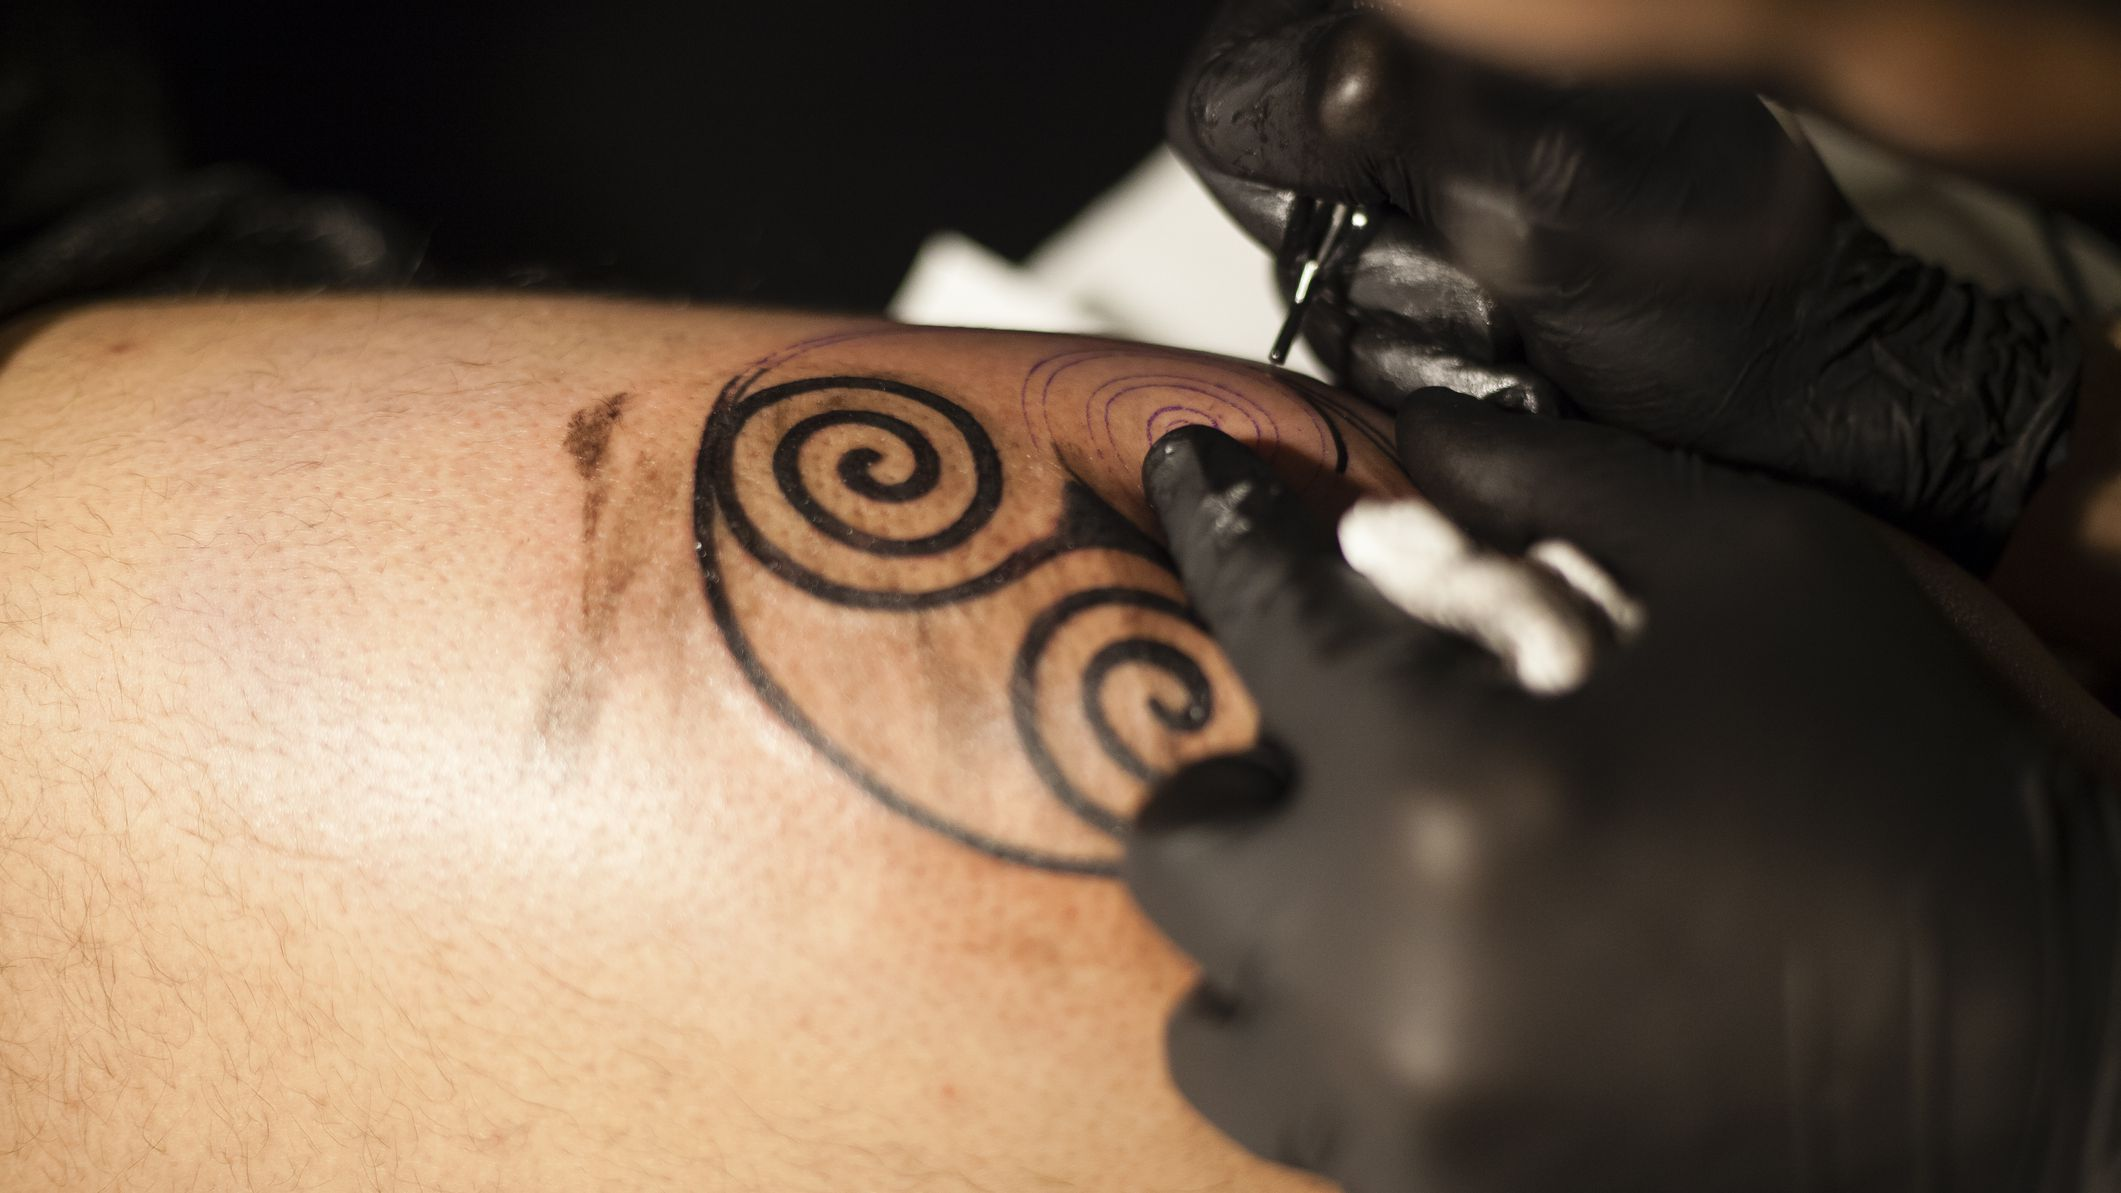 Wiccan Tattoos: Meanings and What You Need to Know